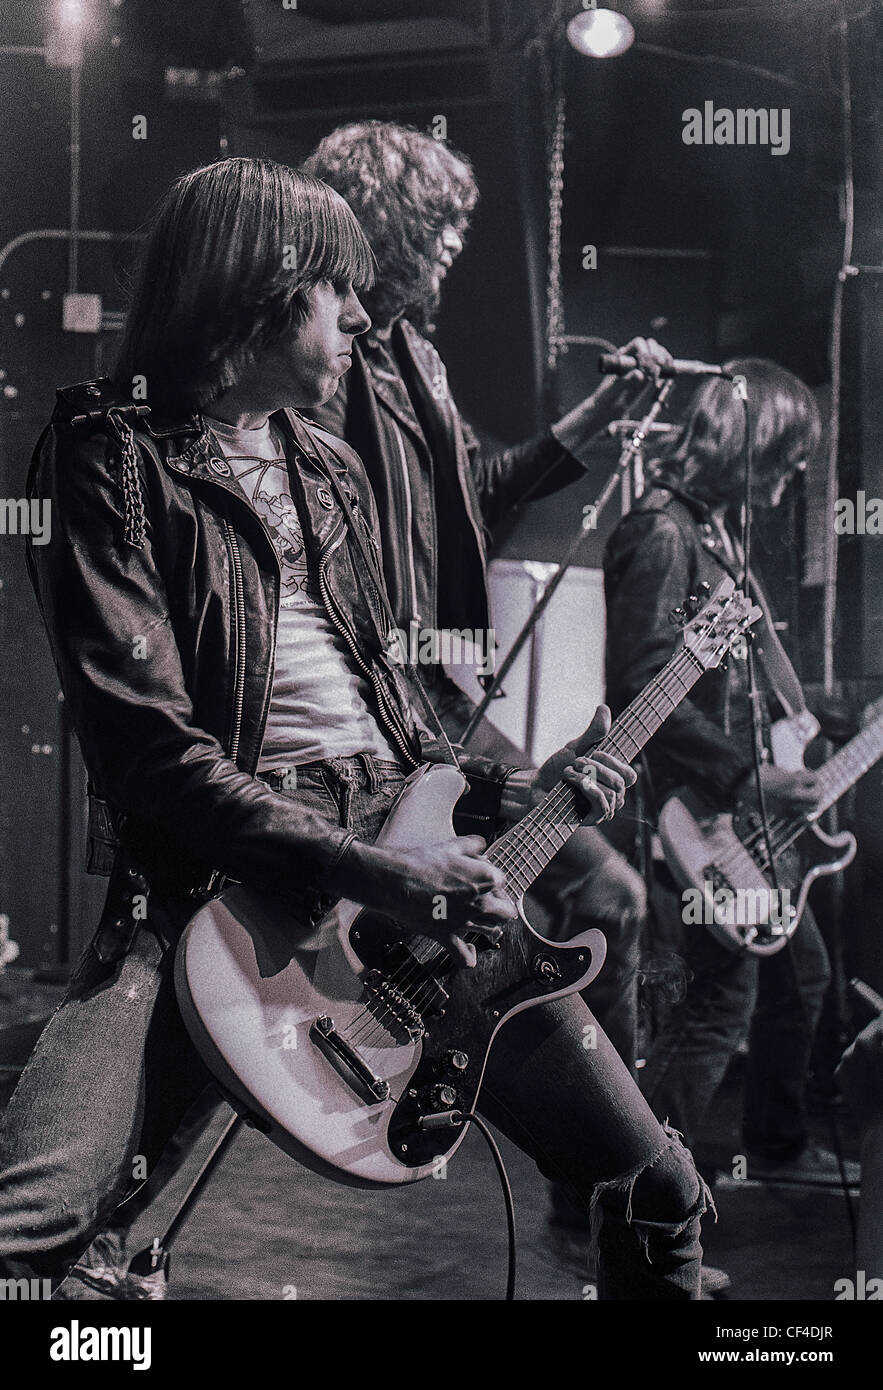 New York, NY, USA - C.B.G.B.'s Nightclub, Interior, with The Ramones, Punk Rock Band Playing on Stage, Johnny - Stock Image